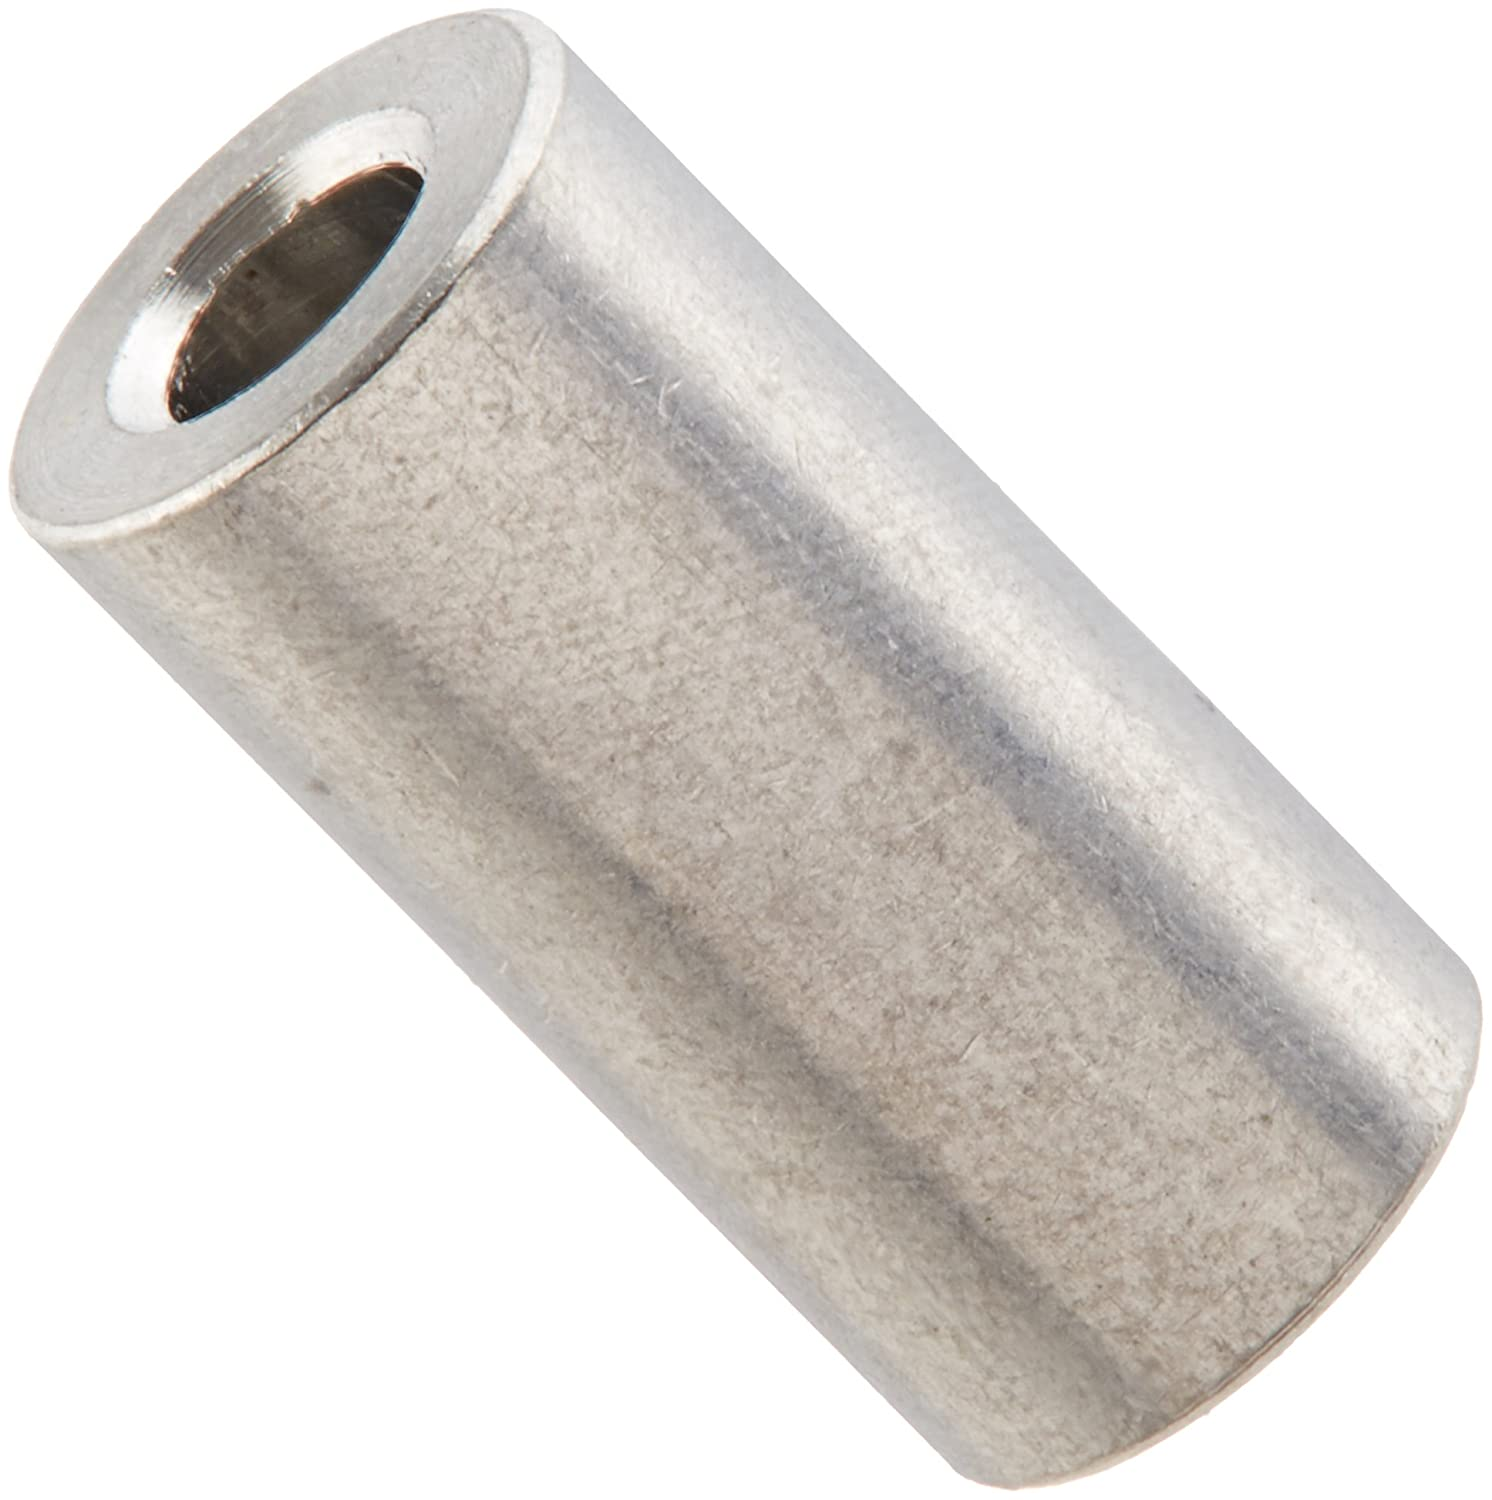 0.115 ID 1//2 Length 1//4 OD Small Parts 140804RSA Pack of 25 Plain Finish Round Spacer 1//4 OD 0.115 ID 1//2 Length Pack of 25 Aluminum #4 Screw Size